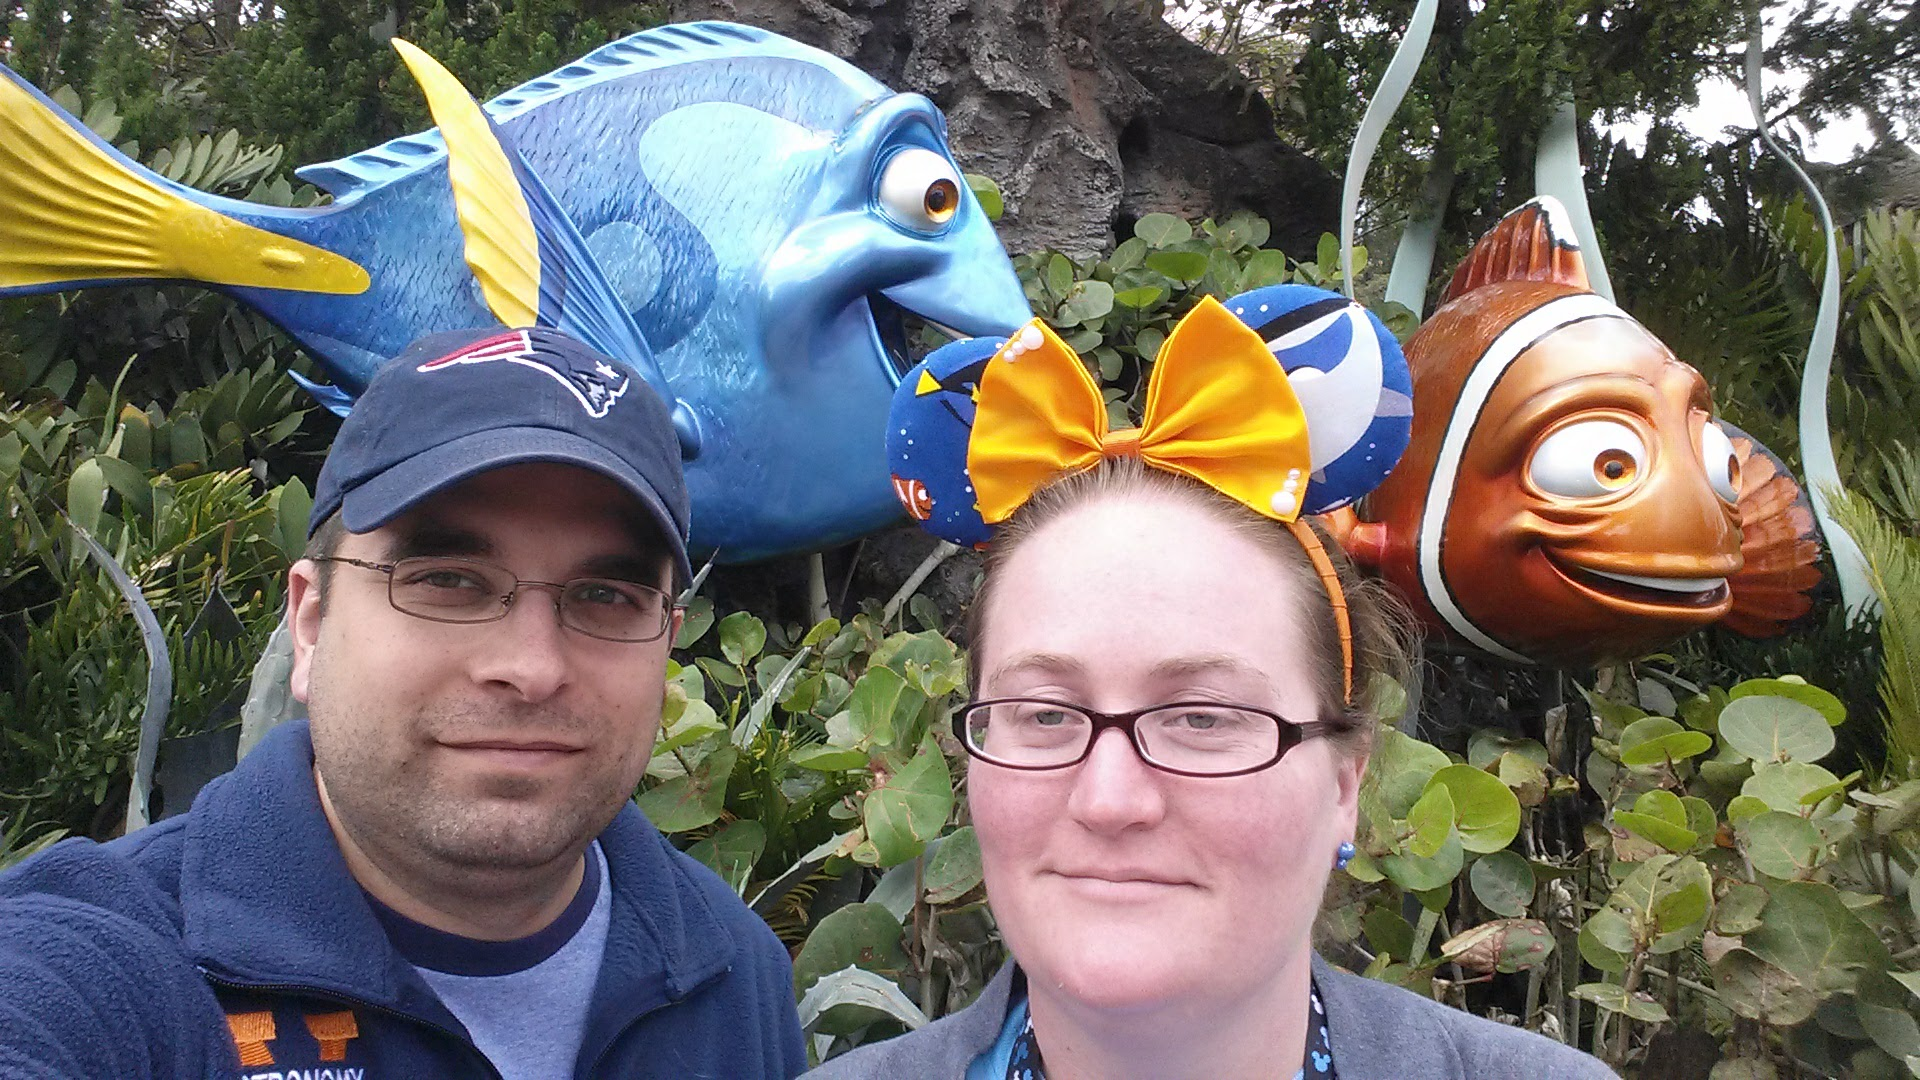 In front of my Dory!